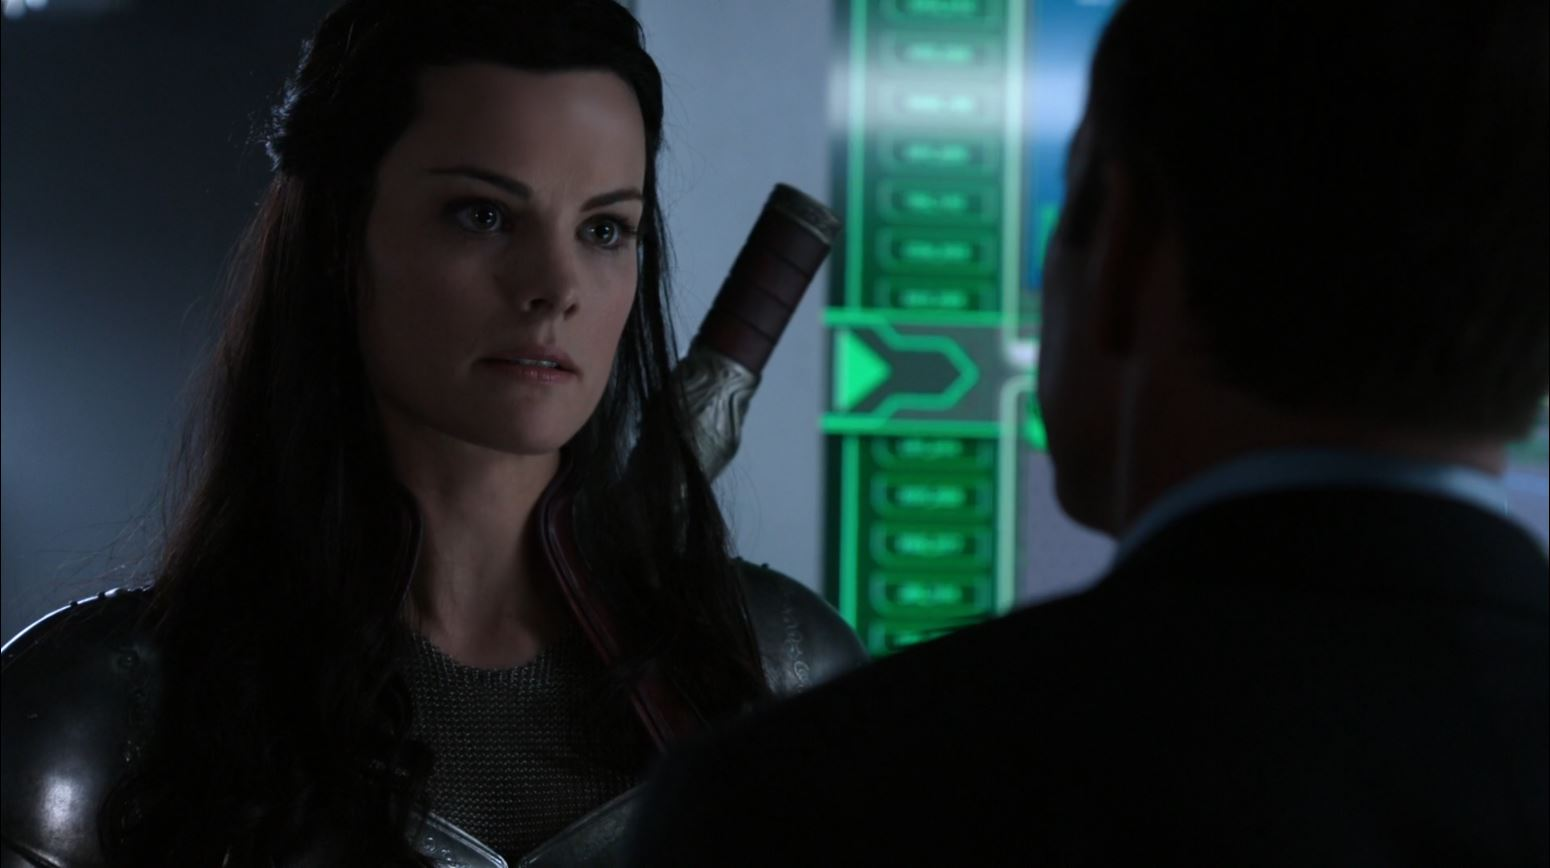 Agents of S.H.I.E.L.D S1Ep15 'Yes Men' - Lady Sif played by Jaime Alexander